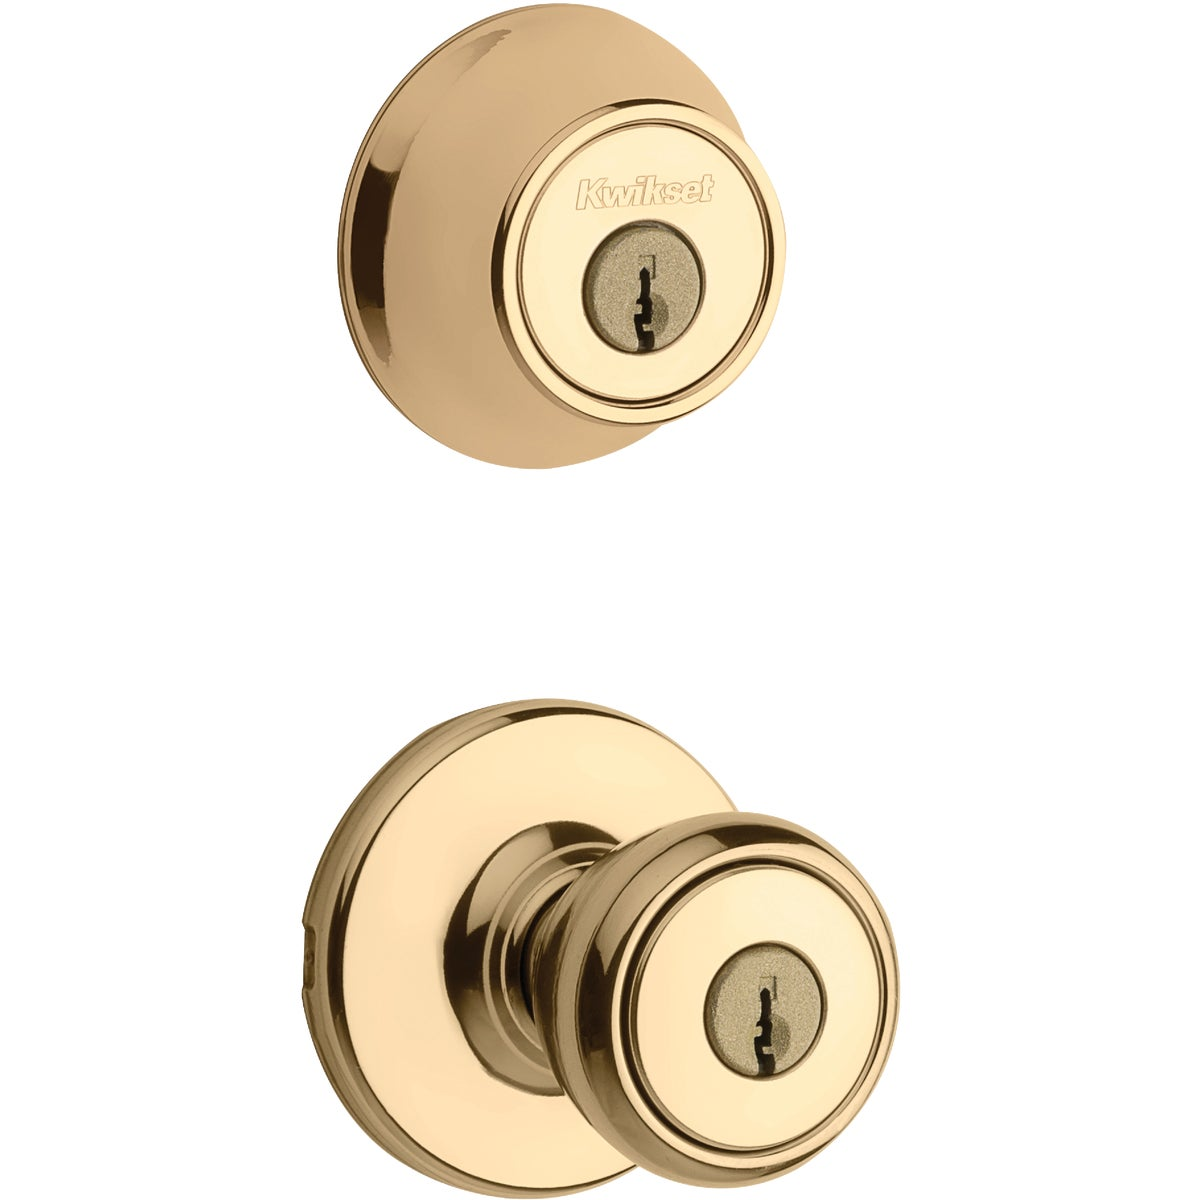 PB CP TYLO 2CY ENT COMBO - 695T 3 CP CODE K6 by Kwikset